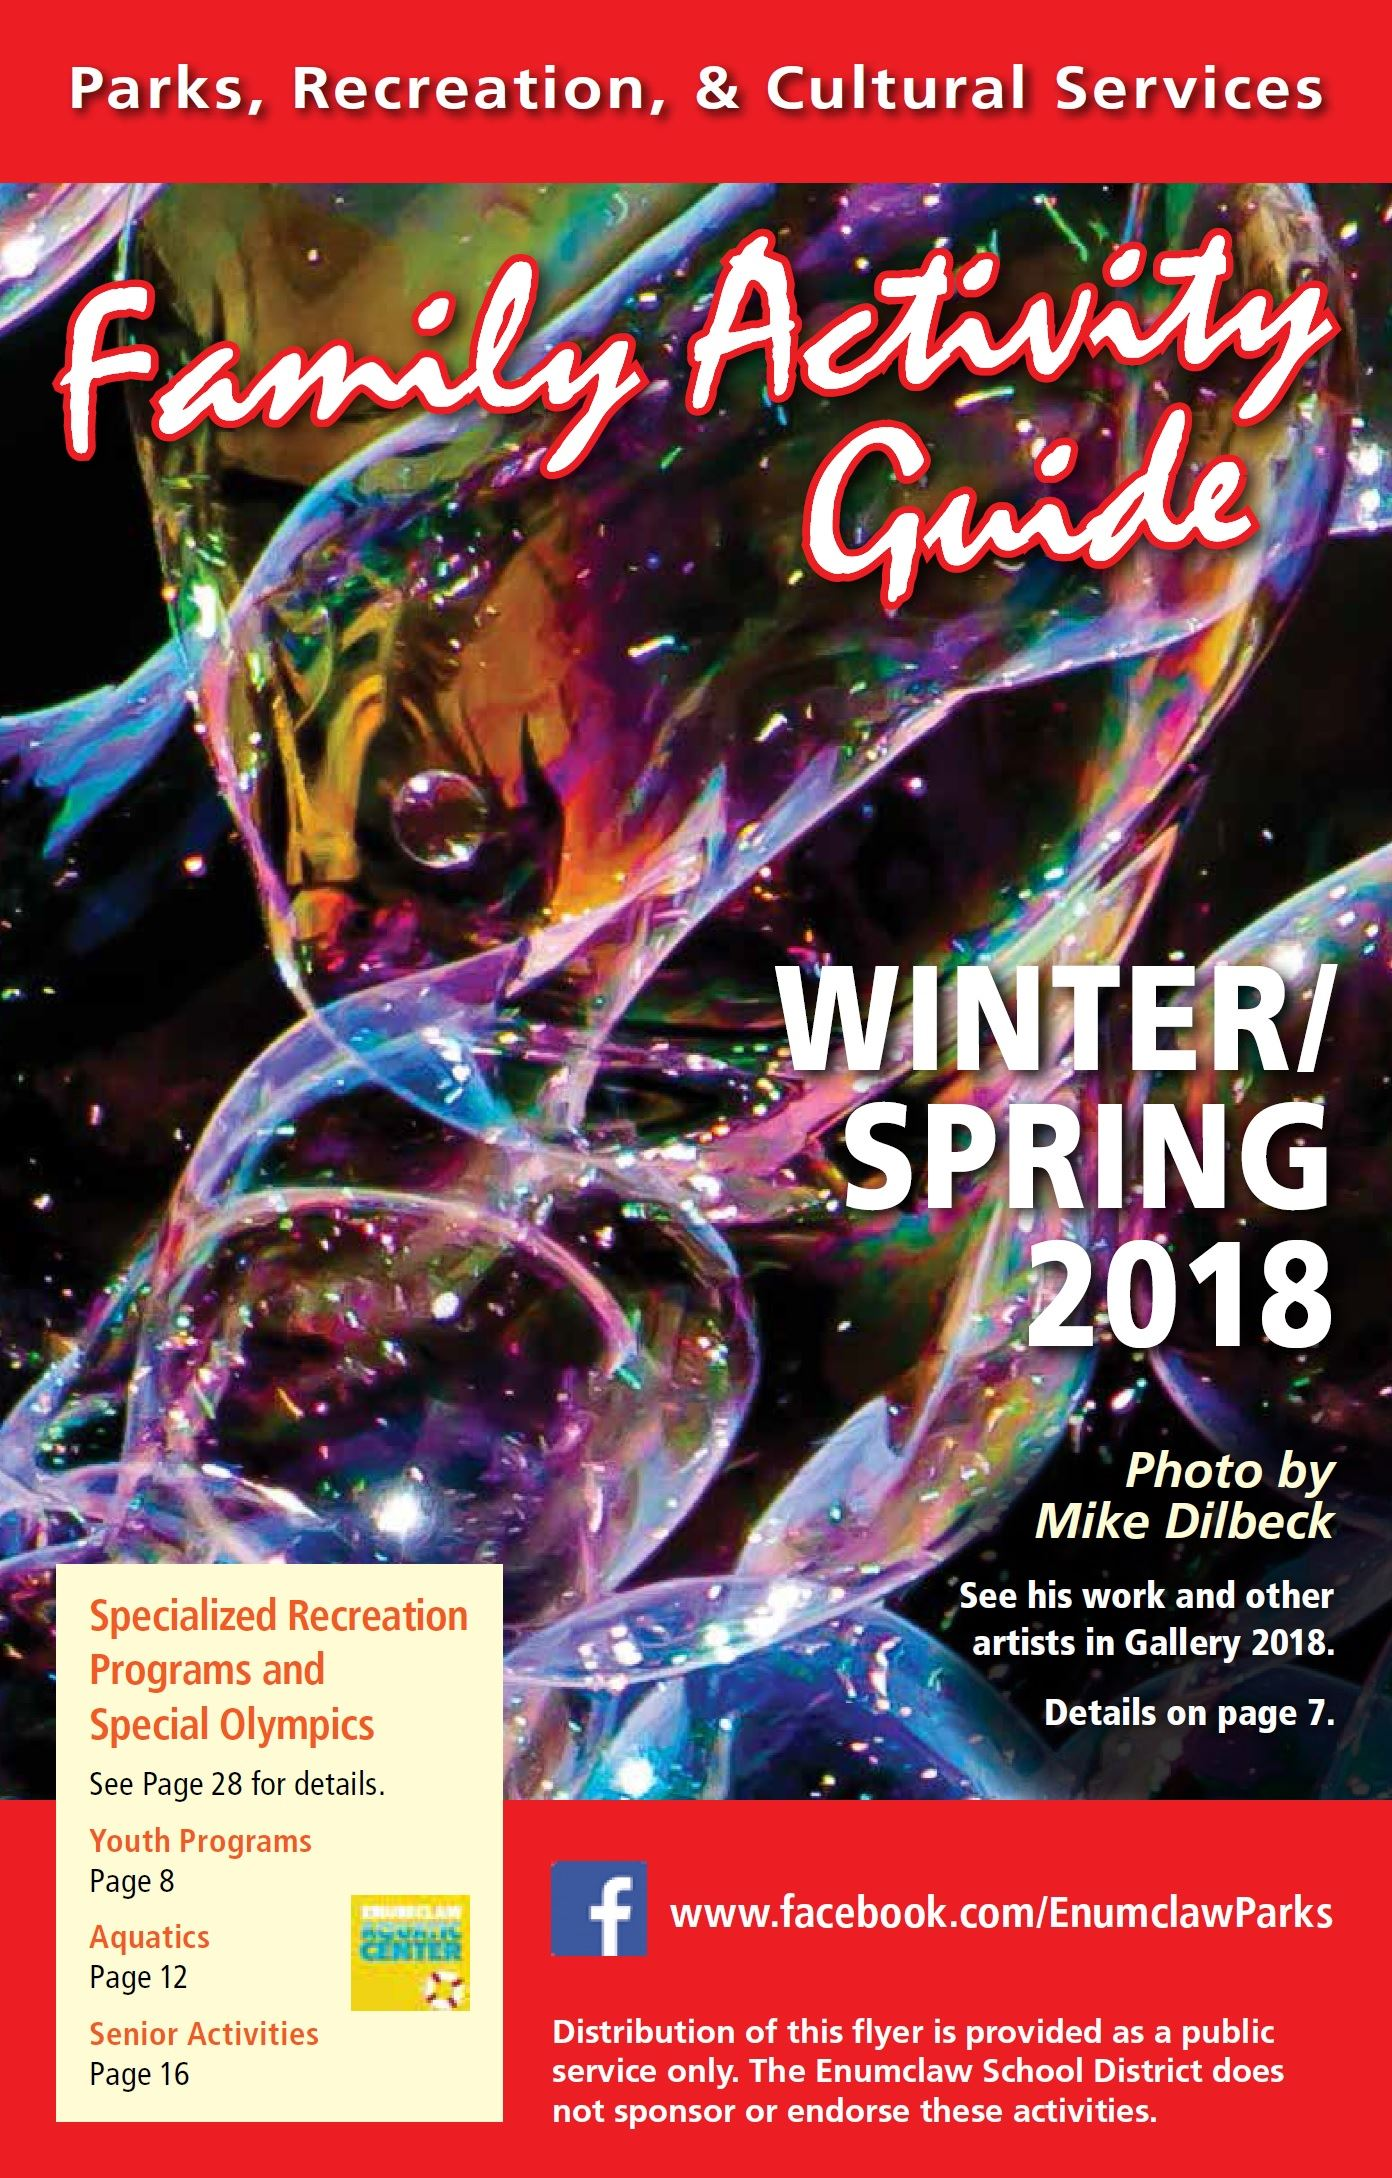 2018 Winter/Spring Activity Guide Cover